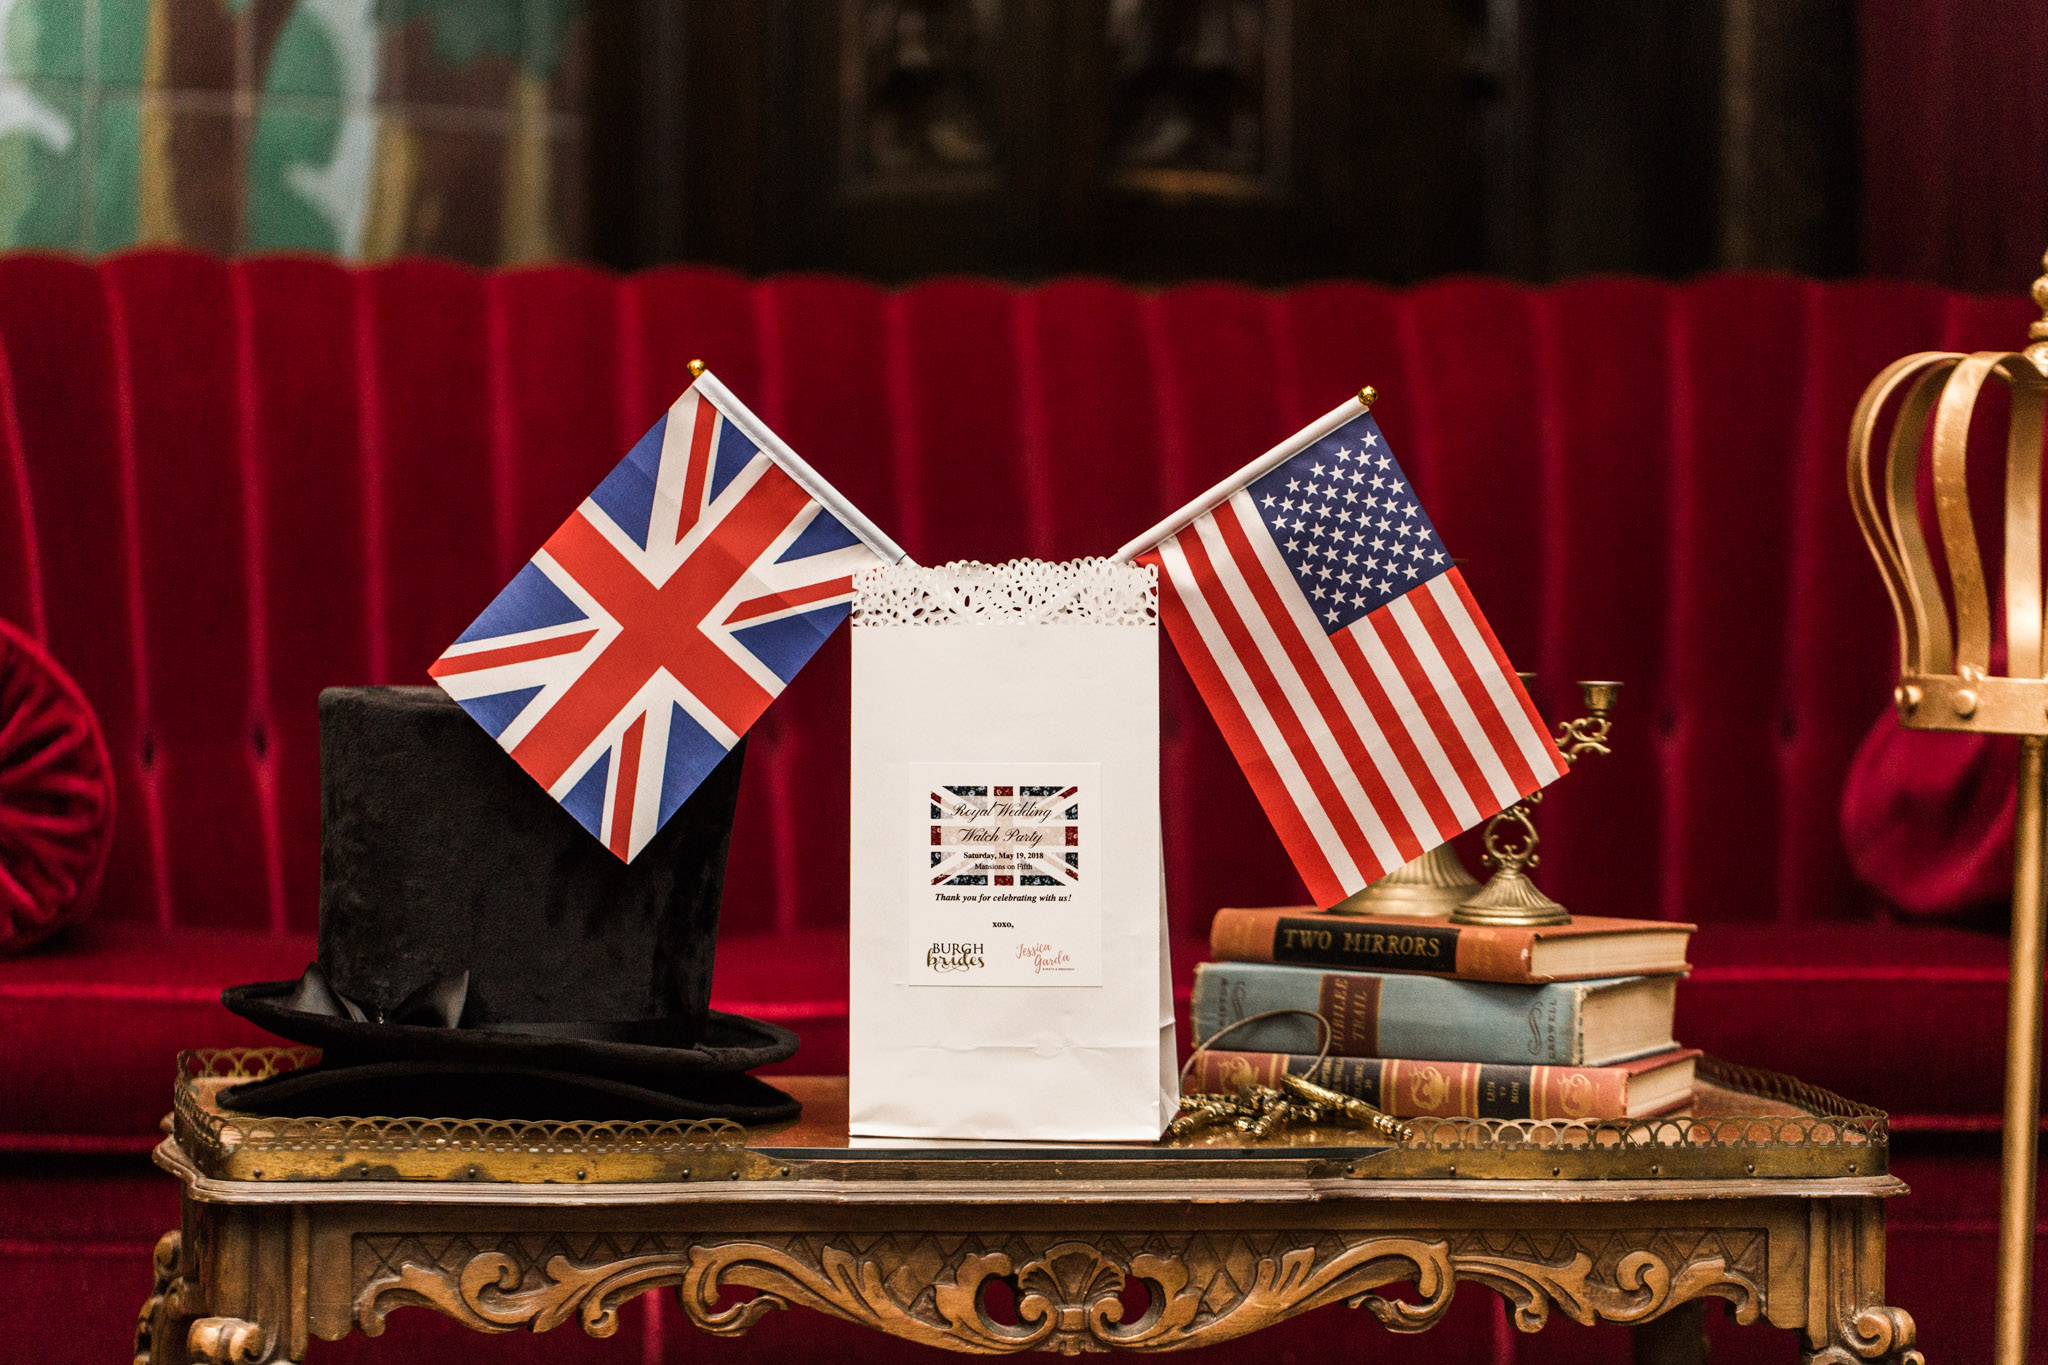 Pittsburgh Wedding Planner - Royal Wedding Watch Party - British themed favor bags